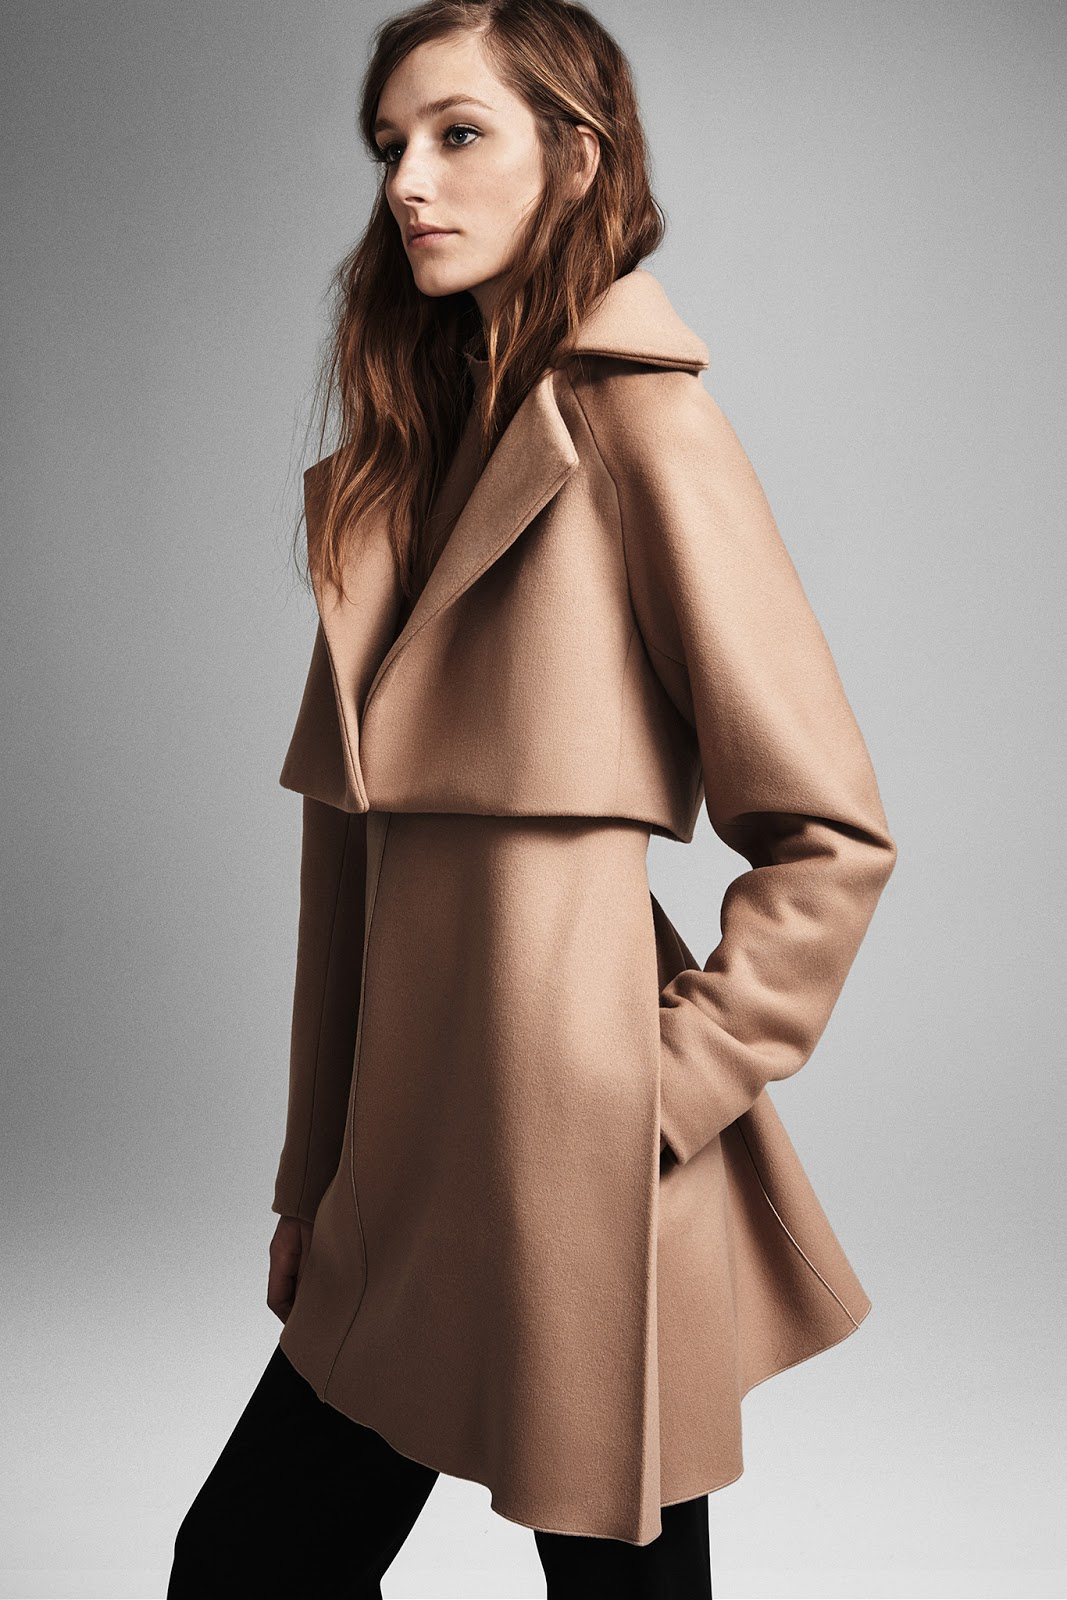 via fashioned by love | Derek Lam Pre-Fall 2015 | camel trends | 2015